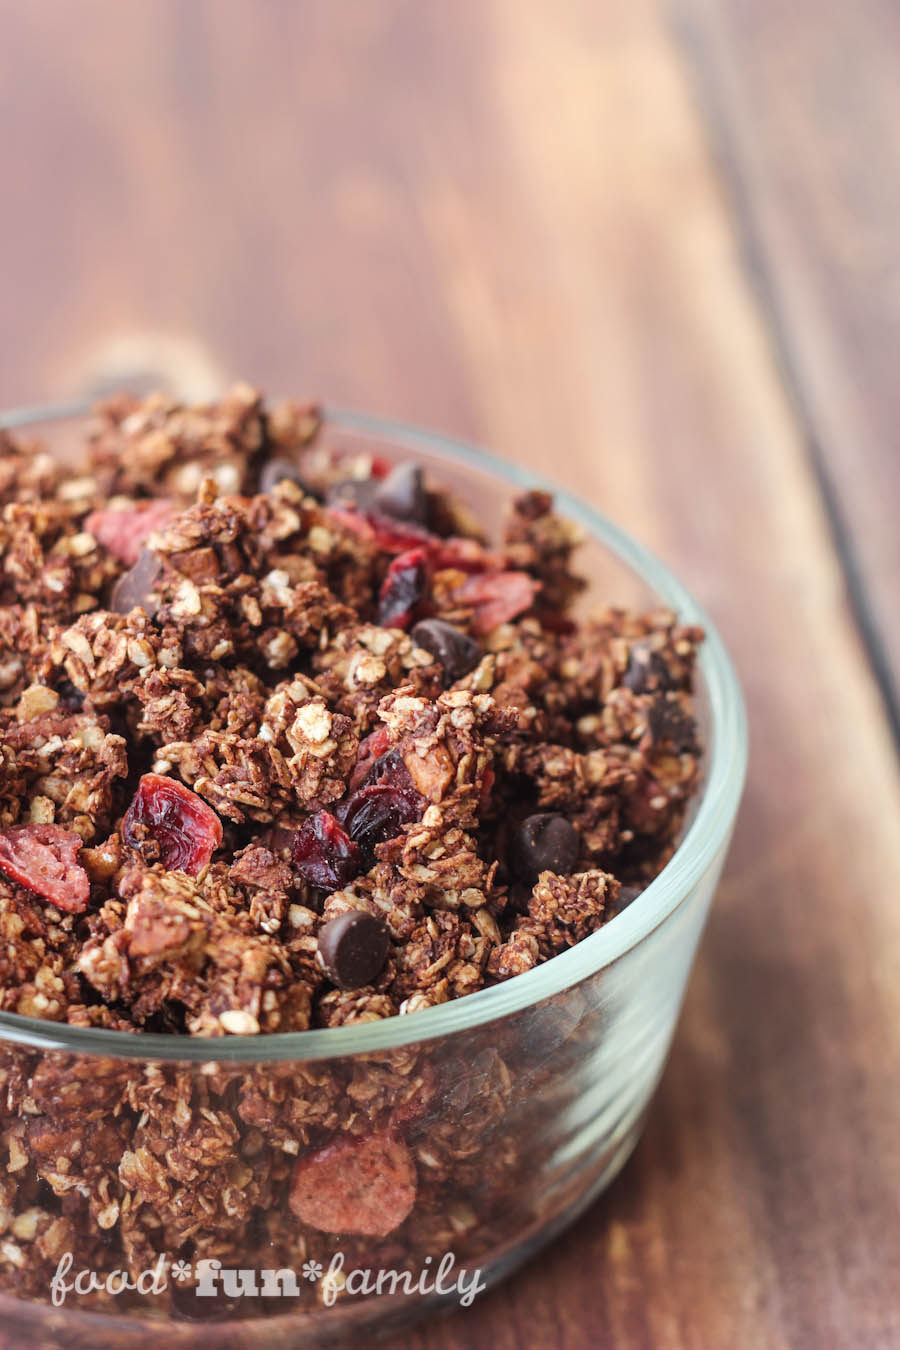 Homemade Dark Chocolate Granola with Cranberries recipe from Food Fun Family